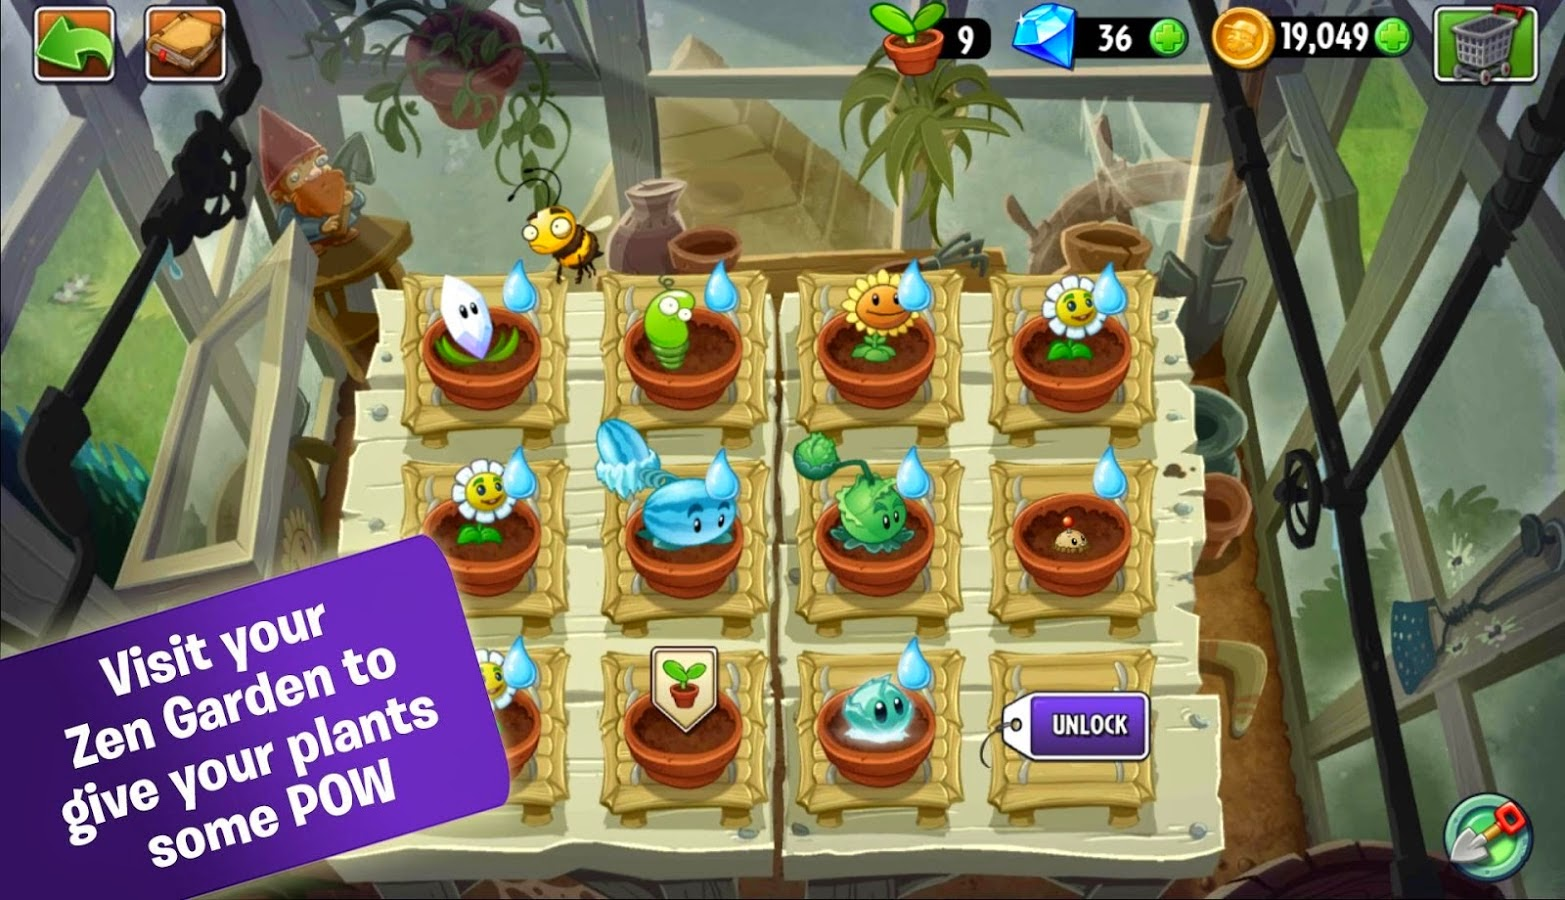 Android Games Plants vs Zombies 2 versi 2.4.1 Asik - 4